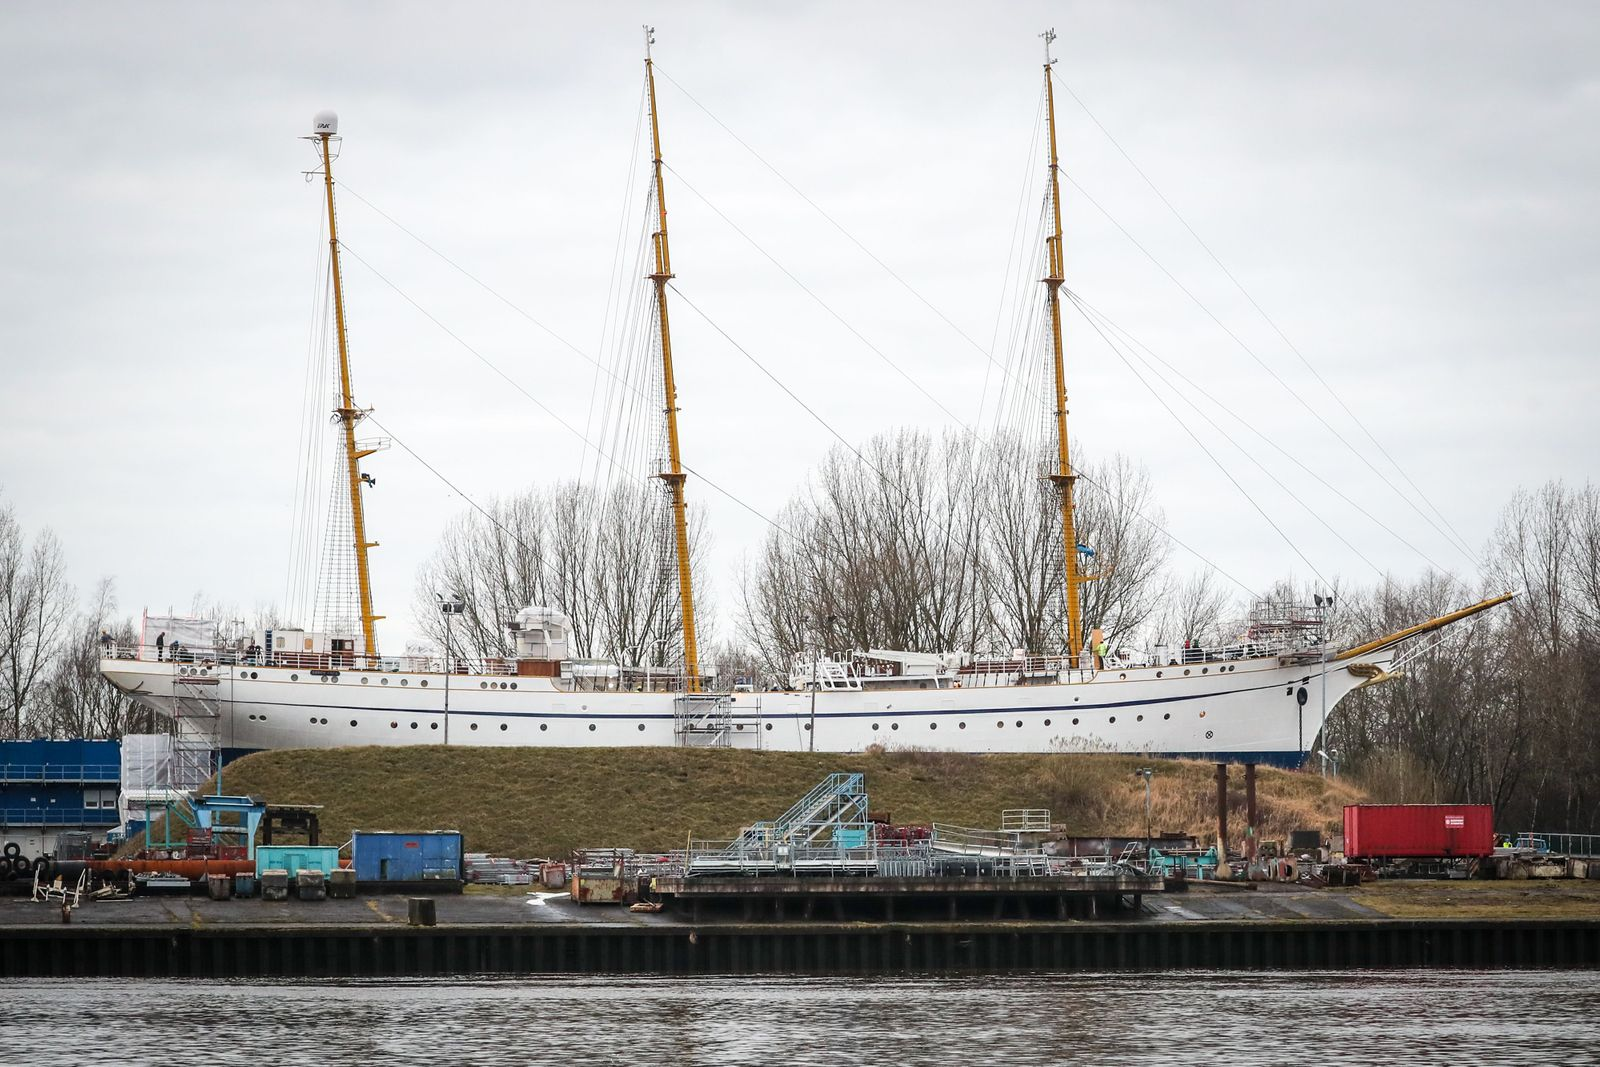 German Navy's sailing school ship Gorch Fock almost completed, Berne, Germany - 18 Feb 2021